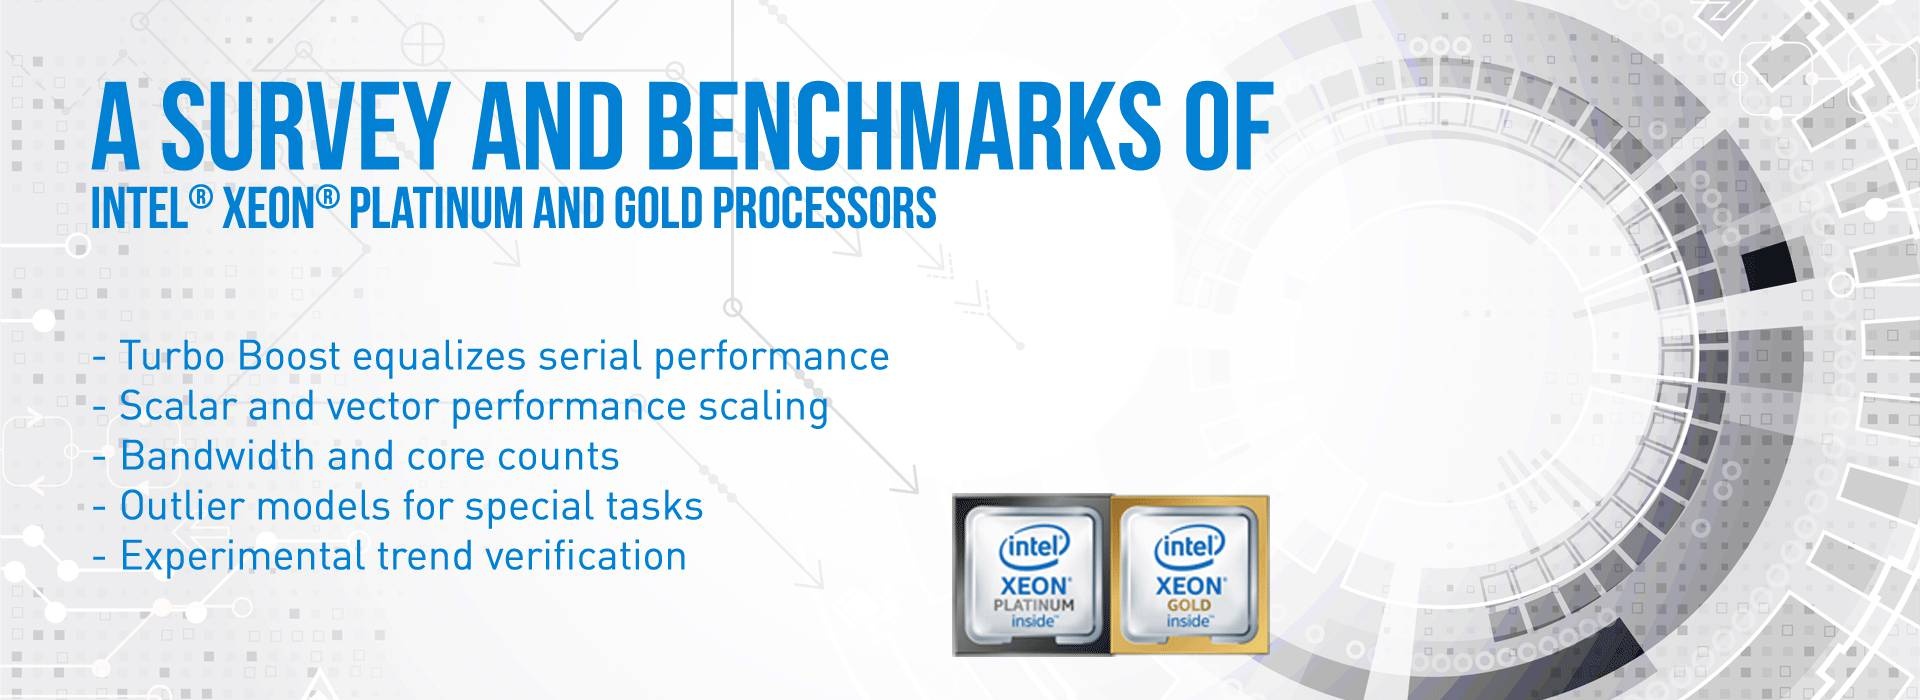 A Survey and Benchmarks of Intel® Xeon® Gold and Platinum